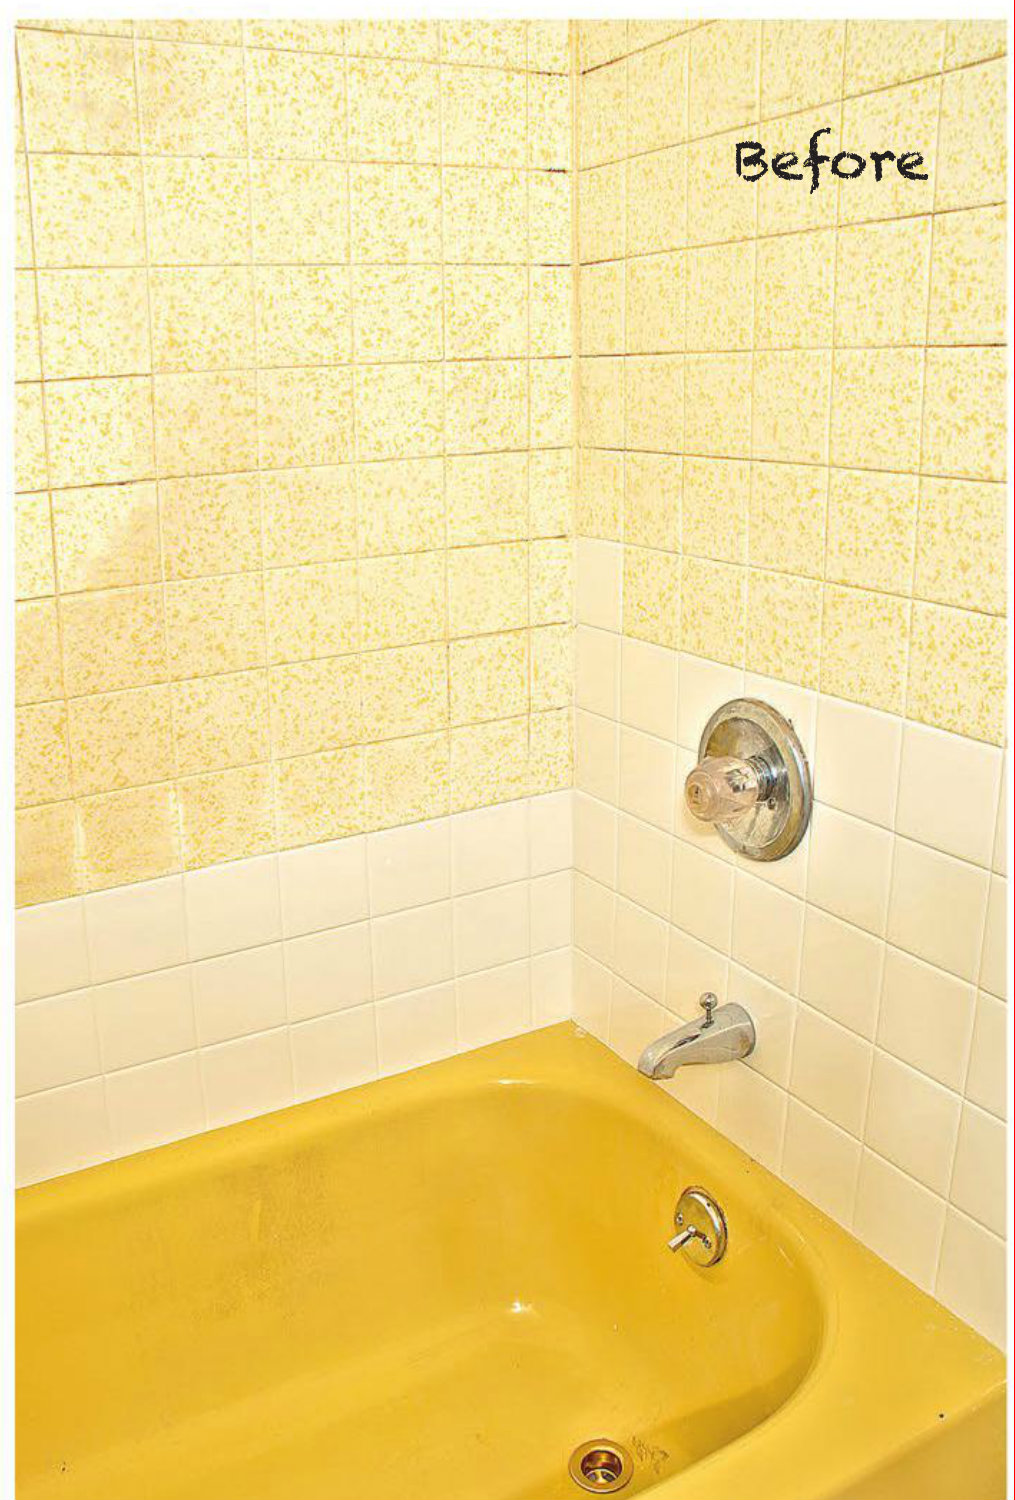 Chic Cost Cost Regrouting Your Tile Miracle How To Regrout Tile Shower How To Regrout Tile Bathroom Save Yourself Time Regrouting Your Tile Save Yourself Time houzz-02 How To Regrout Tile